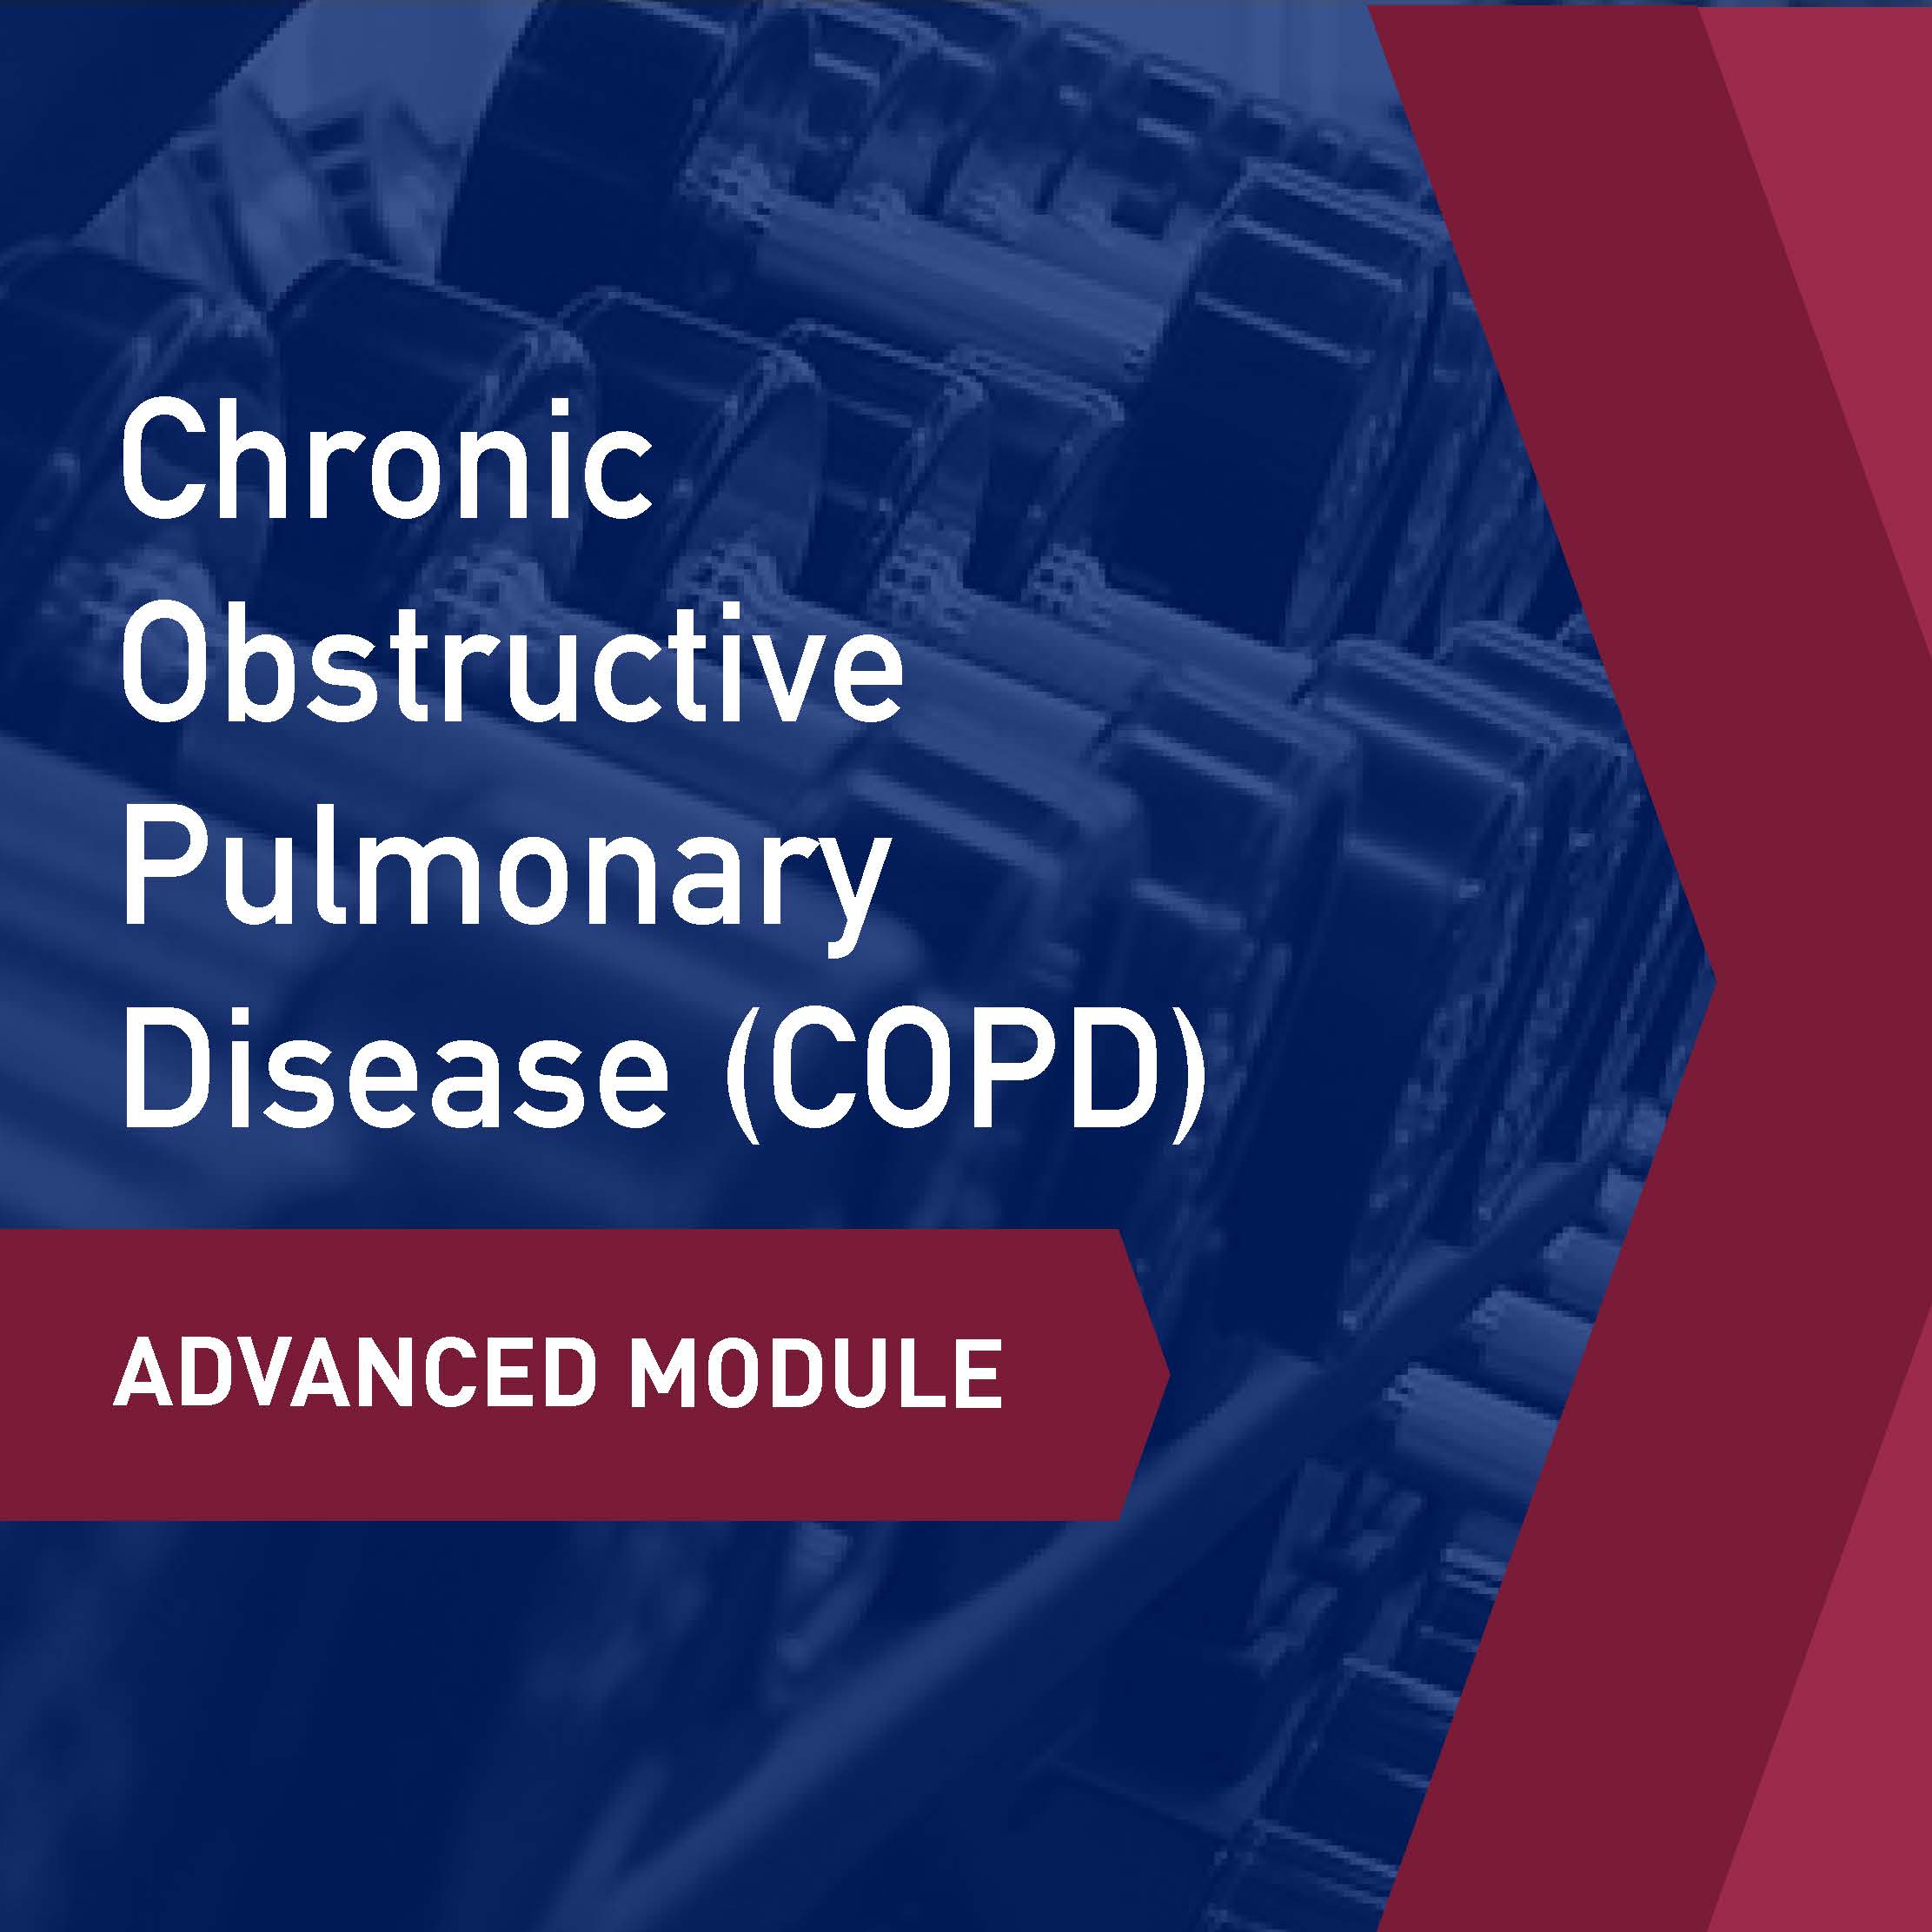 Advanced Learning Module: Chronic Obstructive Pulmonary Disease (COPD)